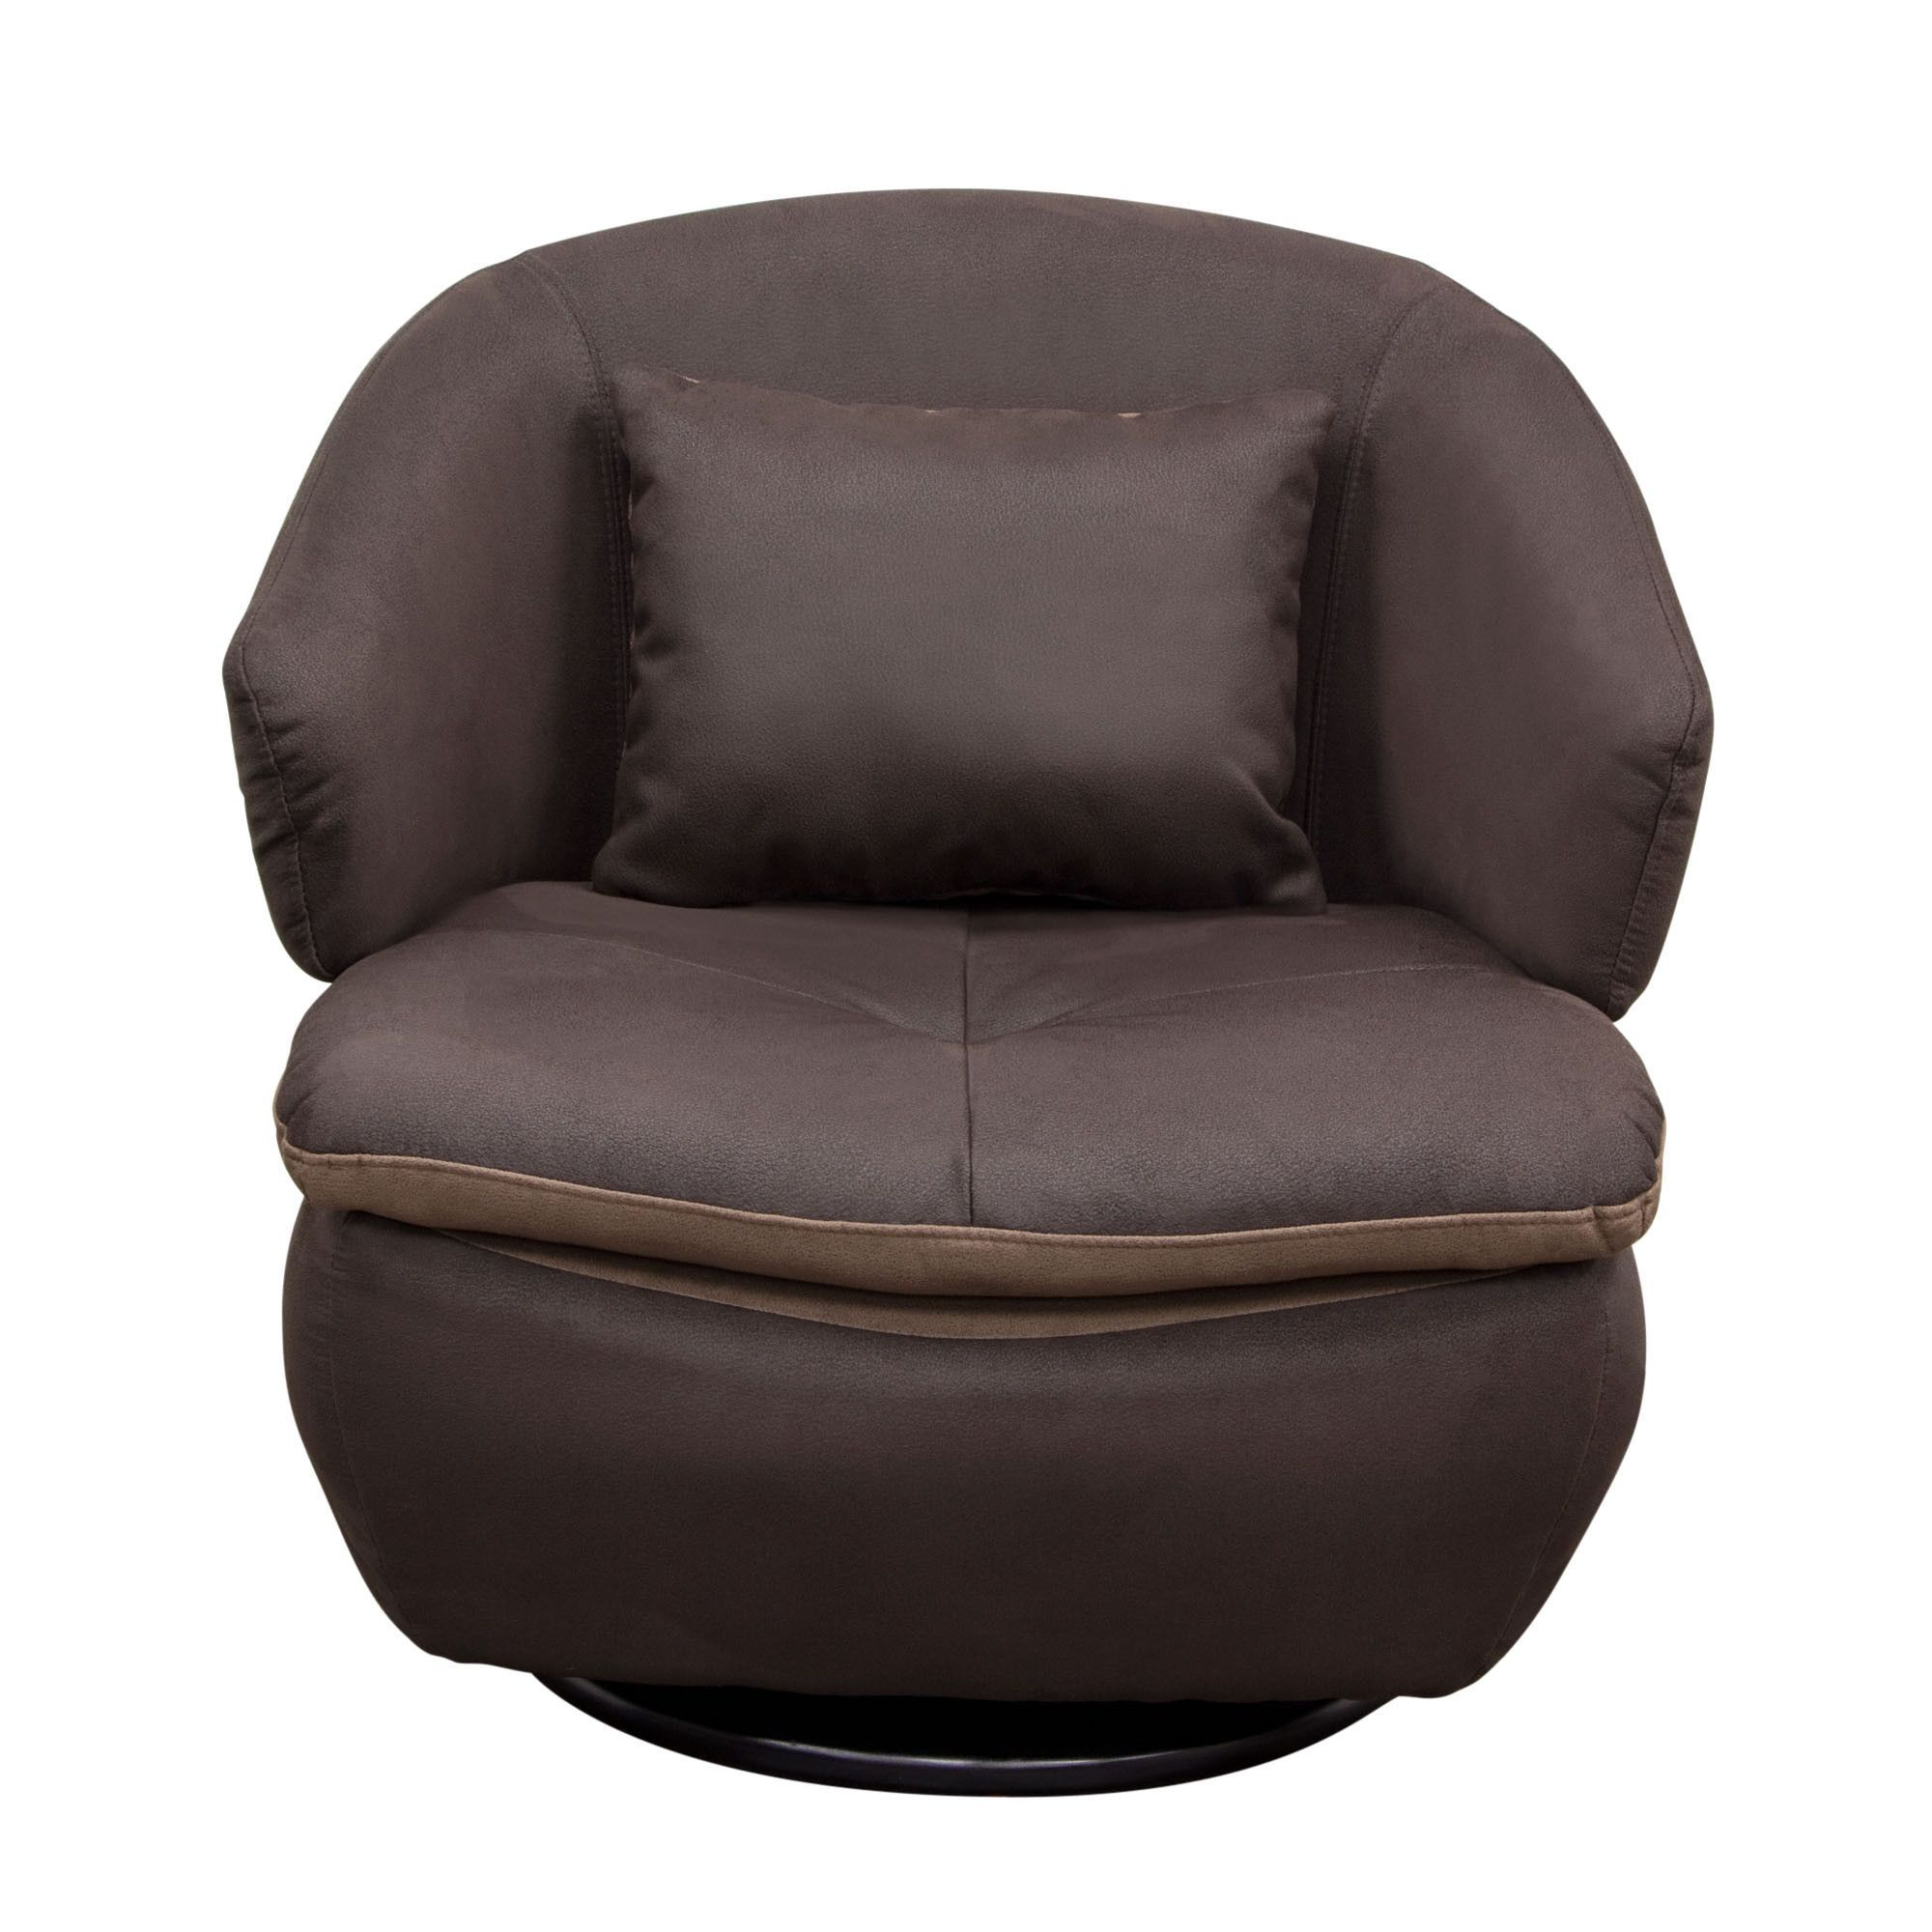 Rio Swivel Accent Chair In Brown Fabricdiamond Sofa | Products Throughout Twirl Swivel Accent Chairs (View 4 of 25)